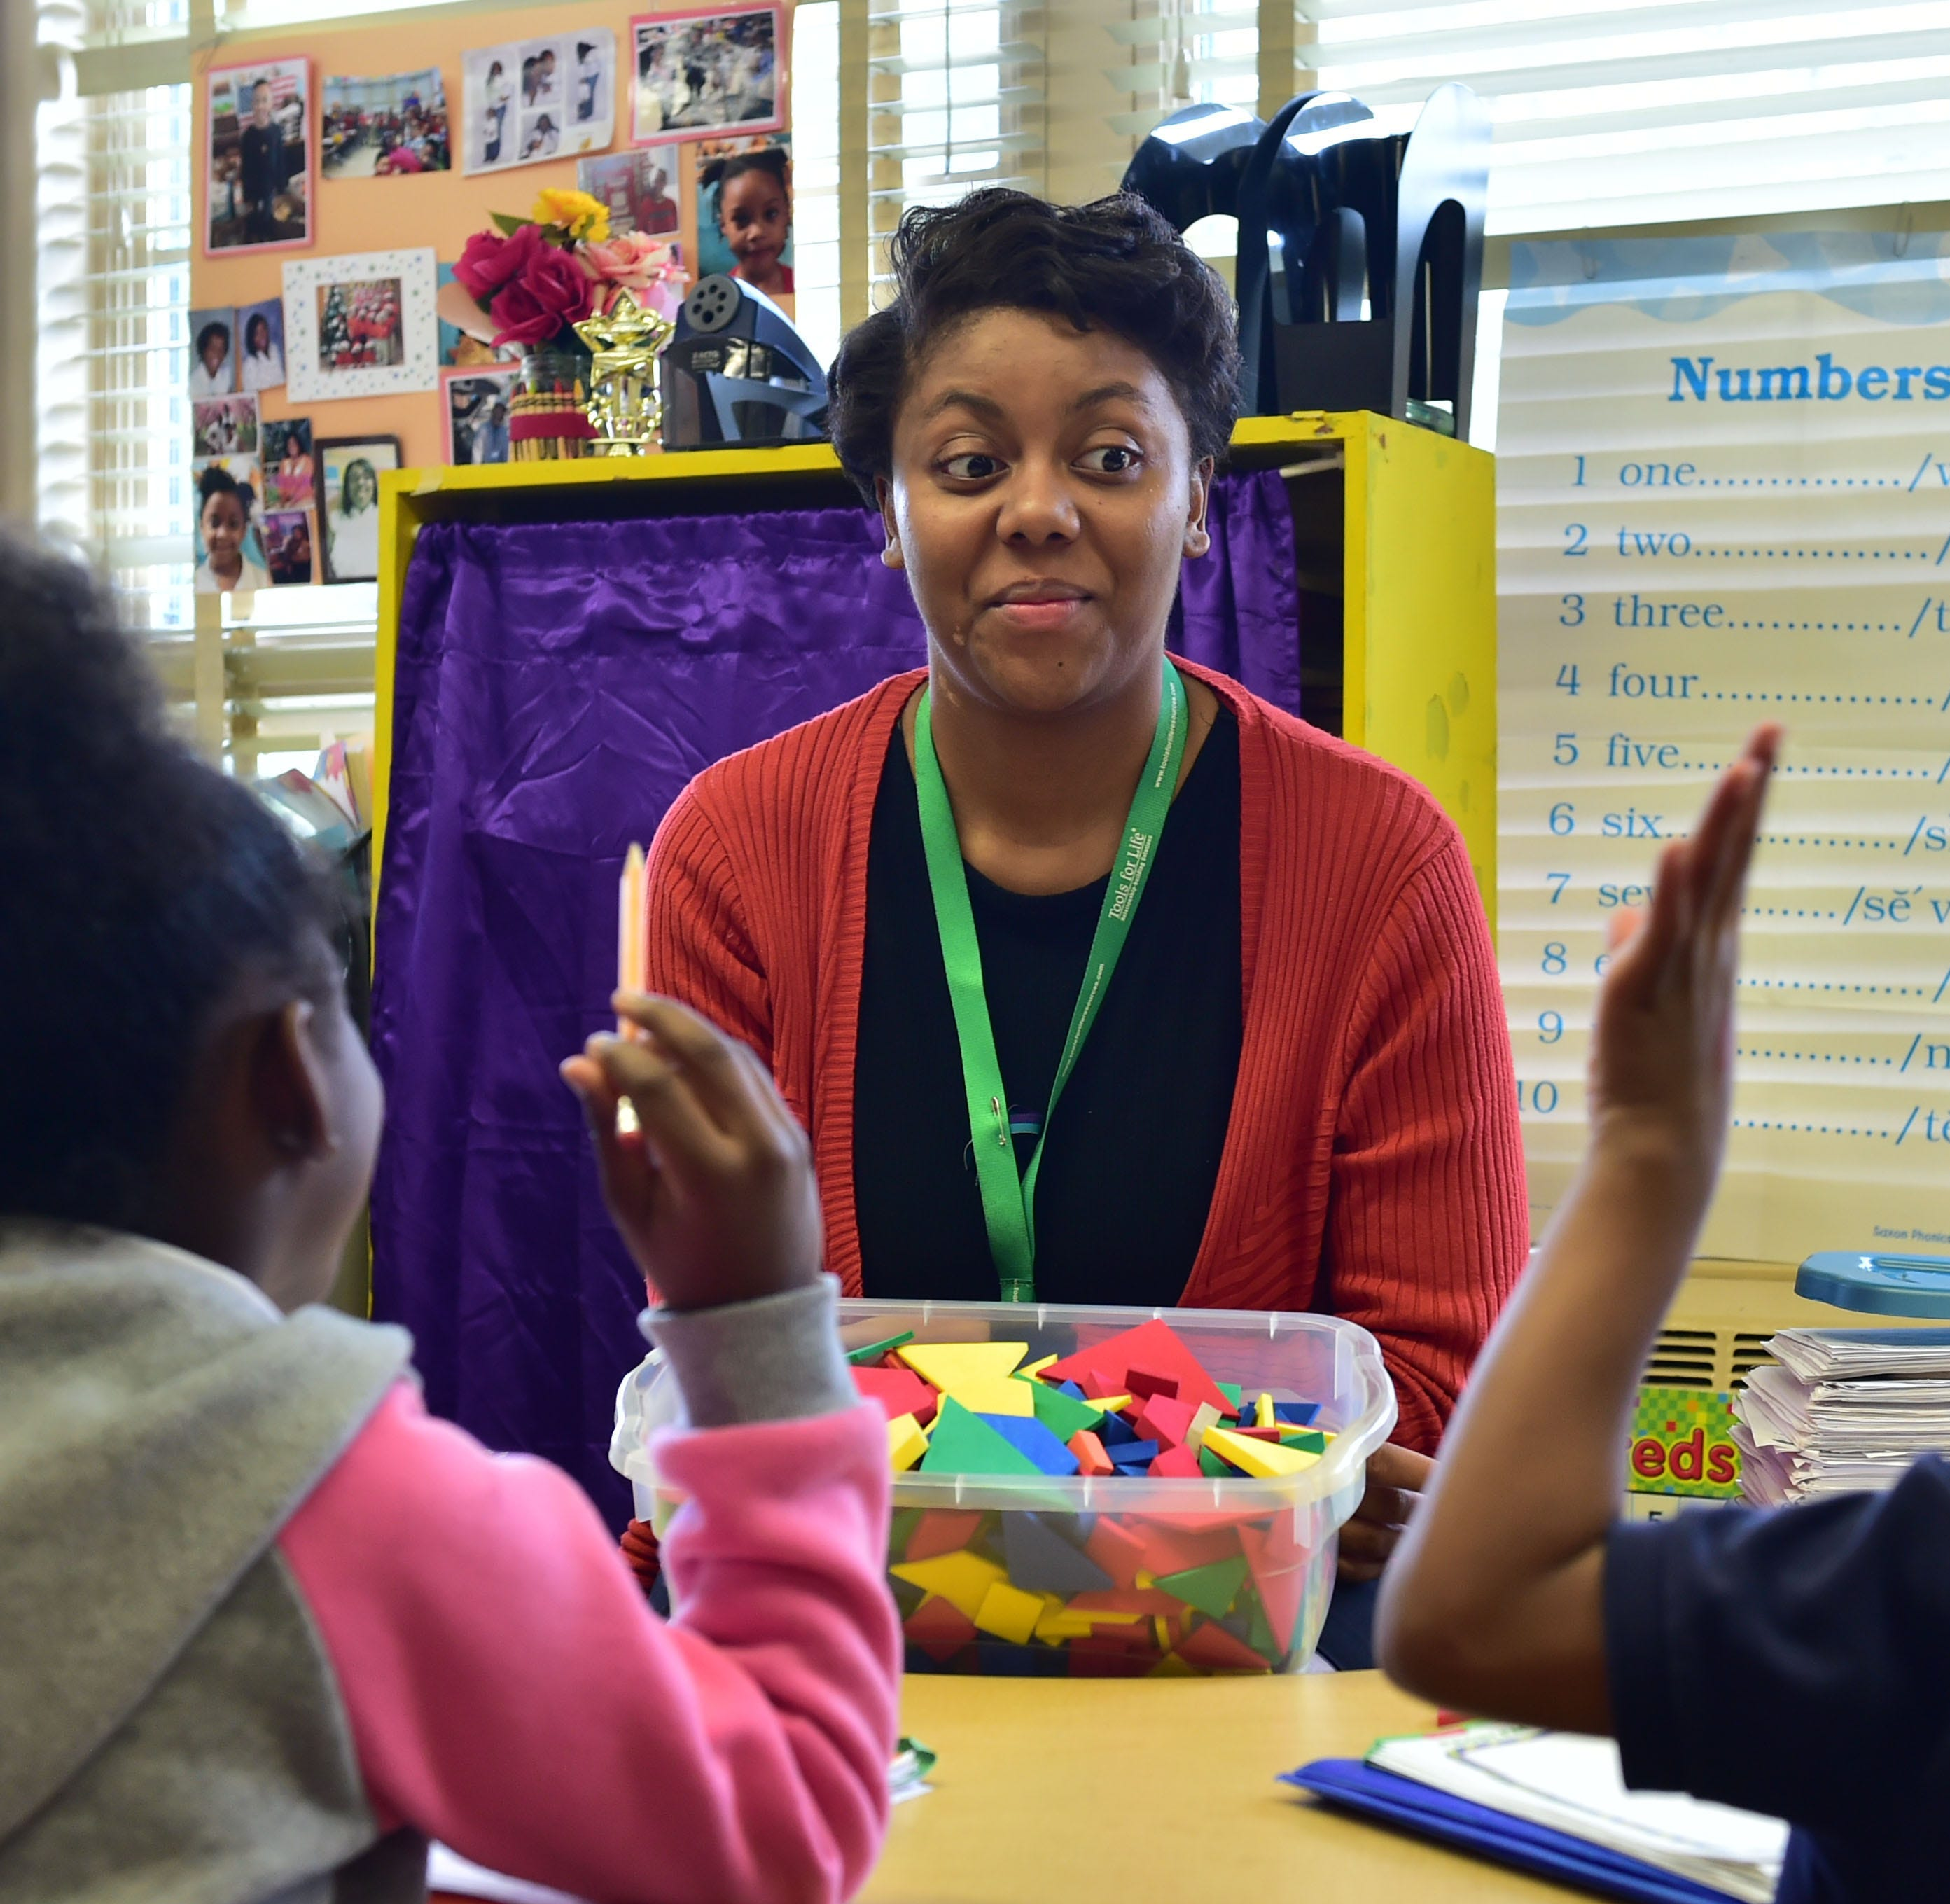 Karlee Lilley works as a teaching assistant at McLeod Elementary in Jackson, Miss. Tuesday, Feb. 26, 2019. In most states, teacher assistants make up to $26,000. In Mississippi, they bring home $18,000.